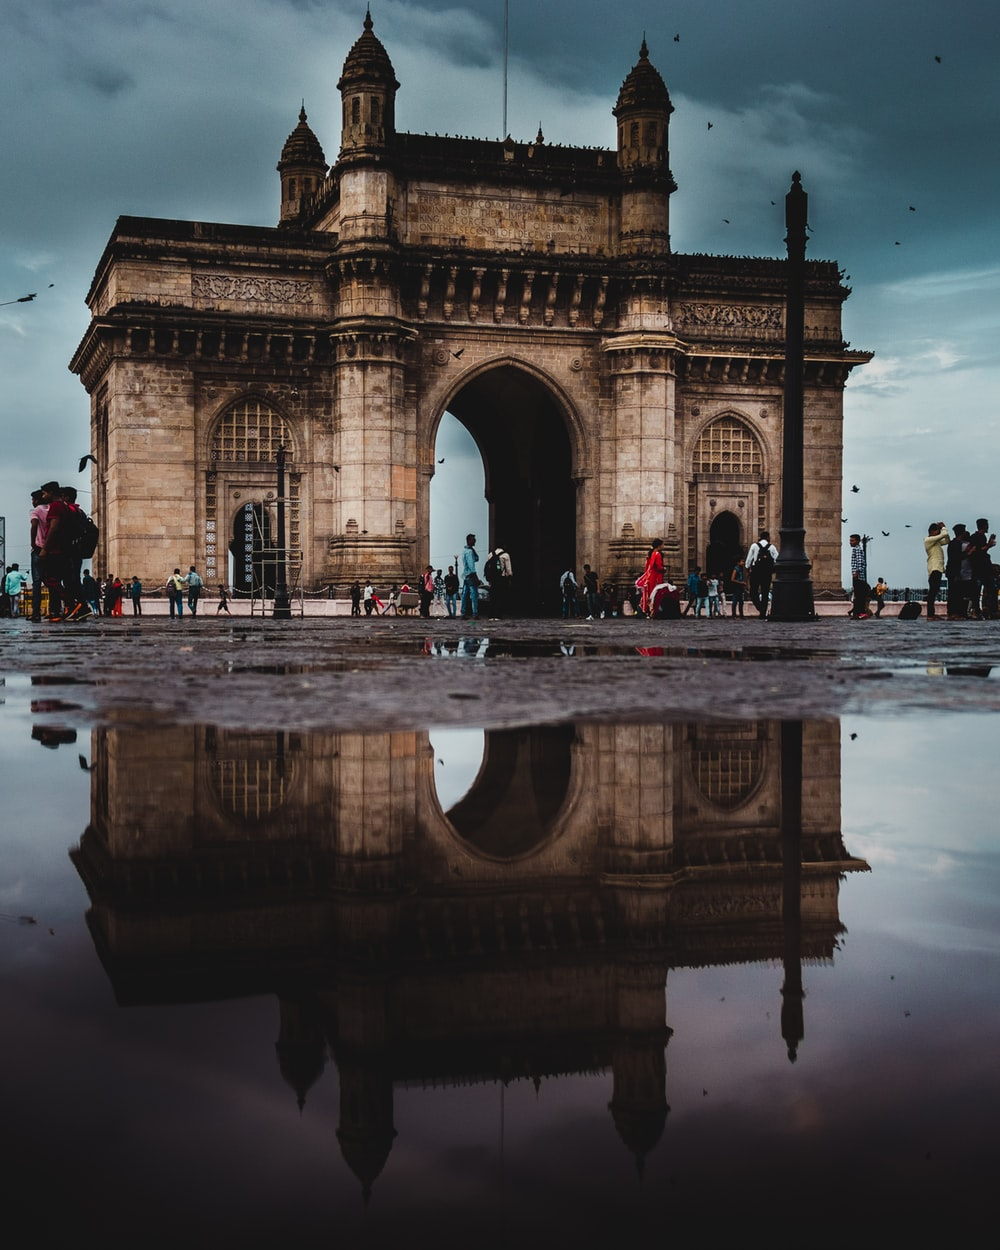 The Gate HD photo by Parth Vyas parth gtr34 on Unsplash 1000x1250